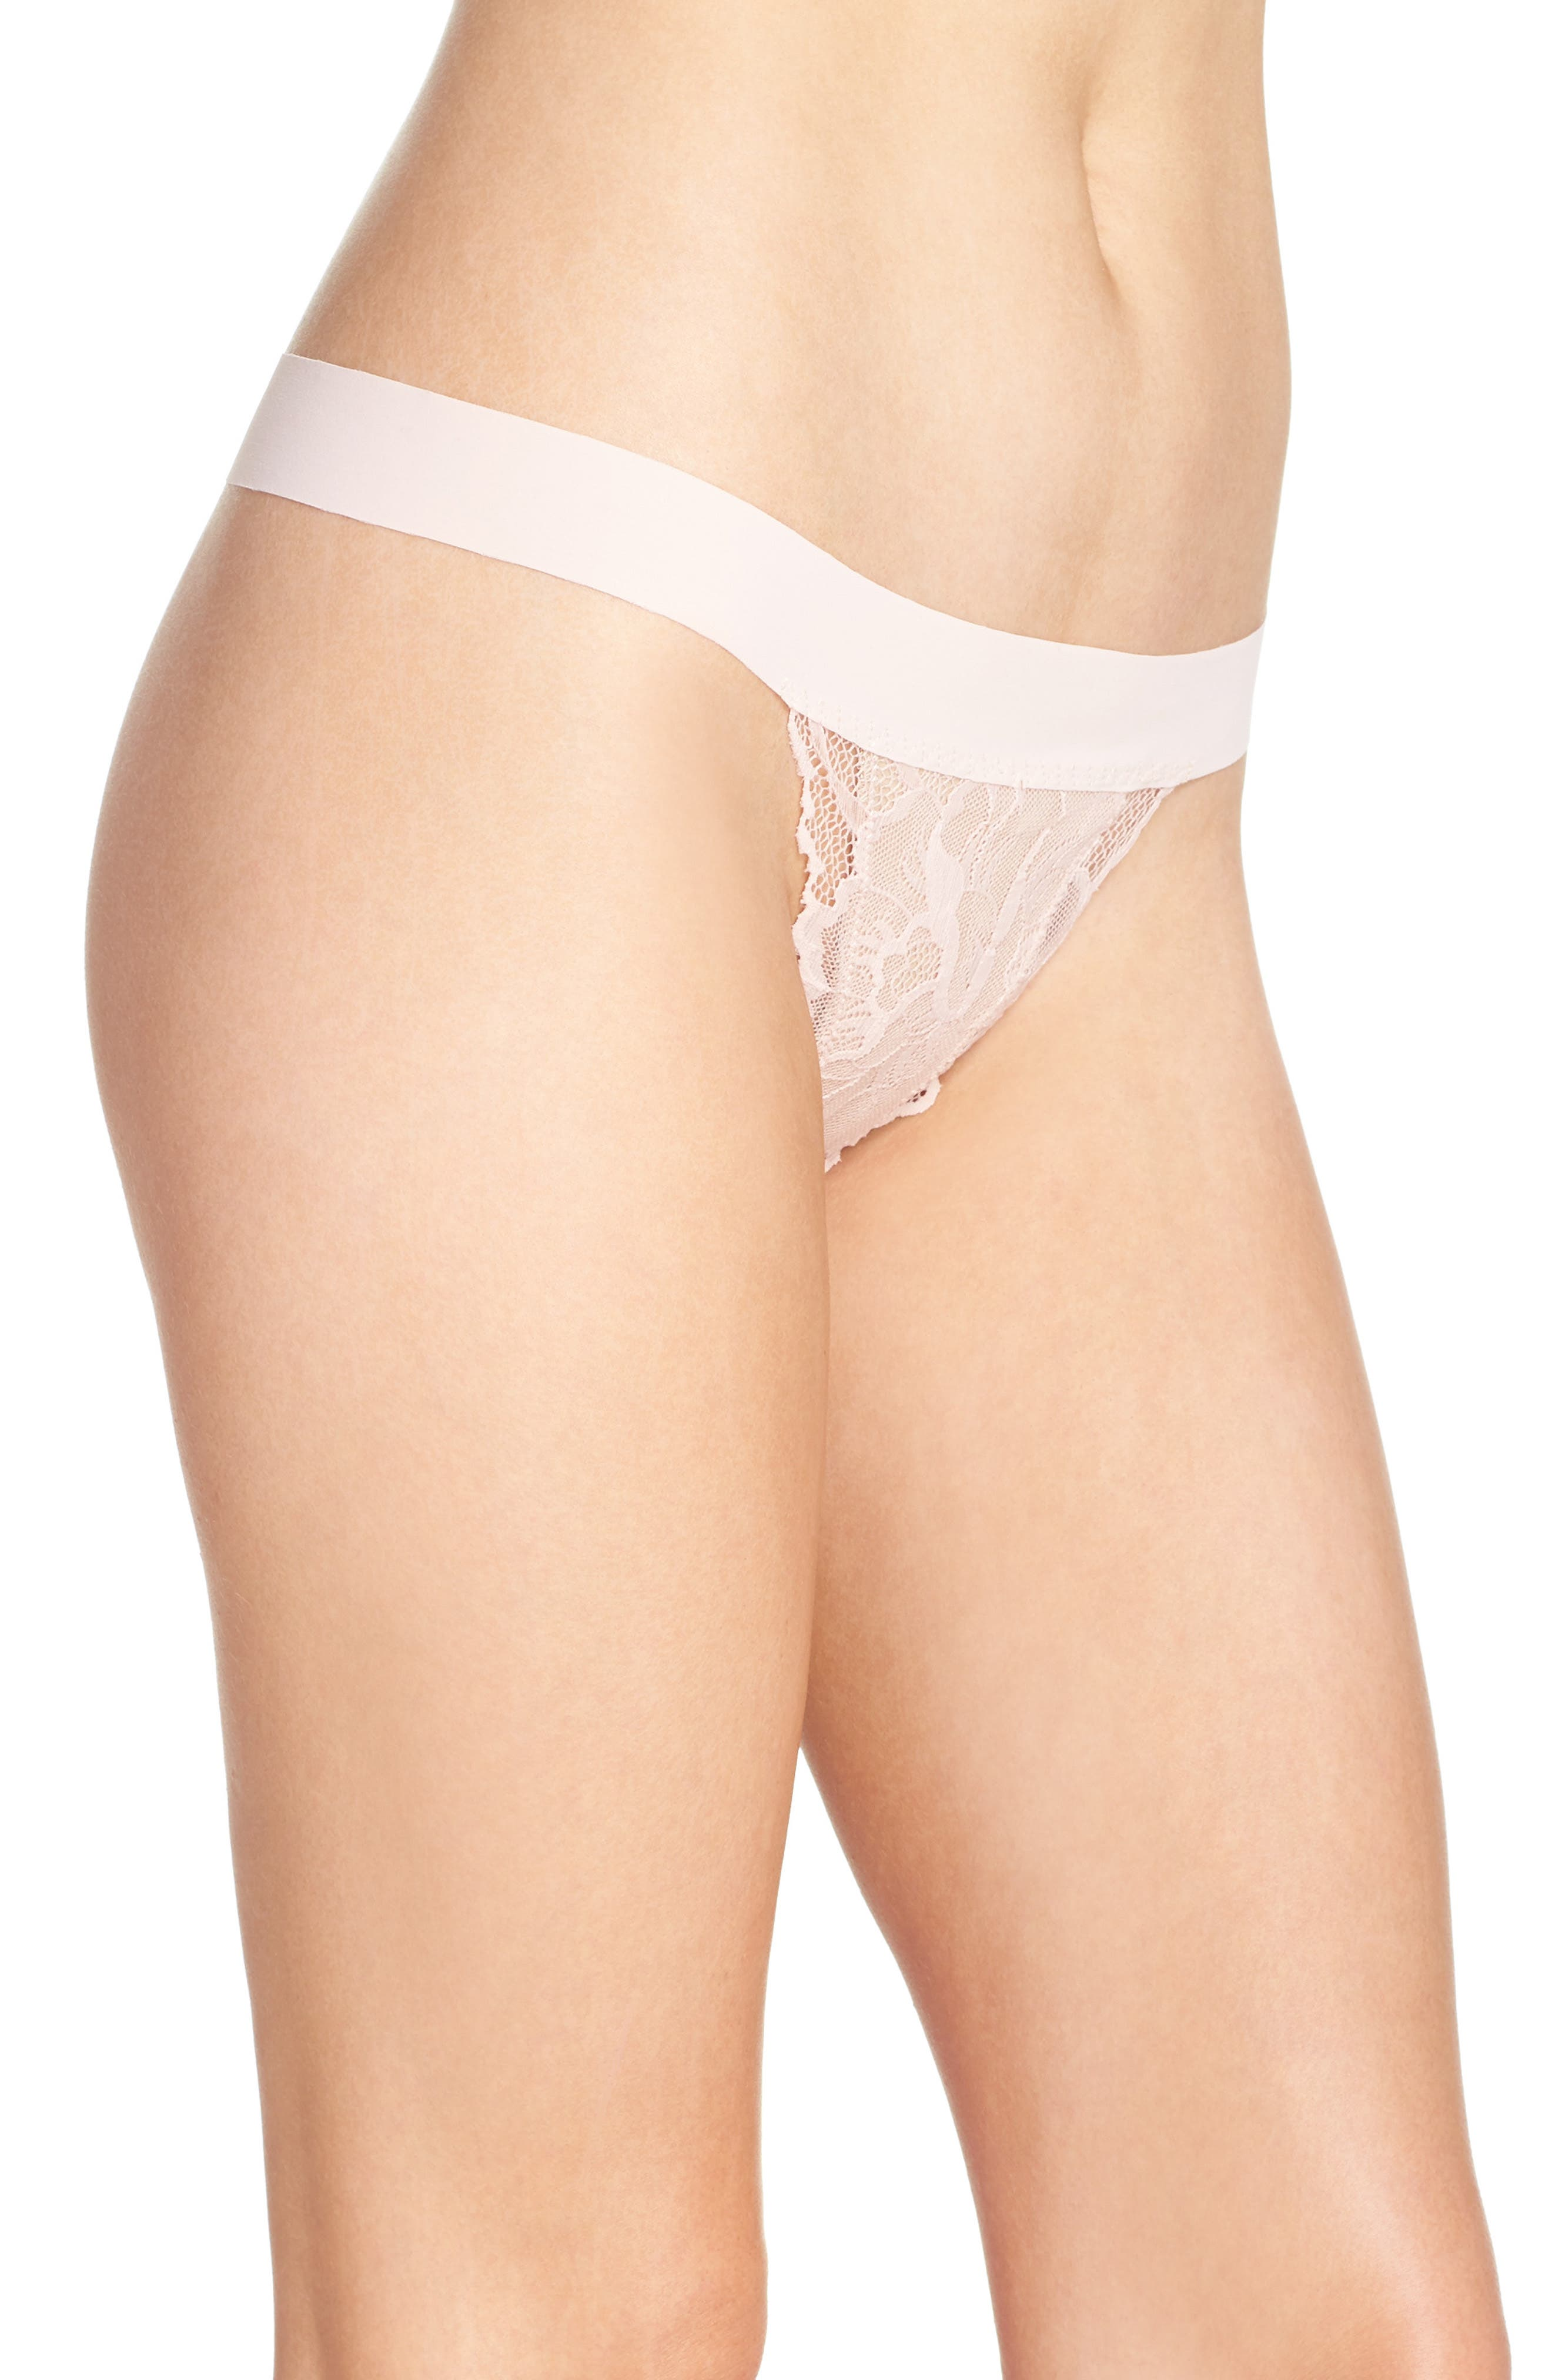 'Double Take' Lace G-String Thong,                             Alternate thumbnail 21, color,